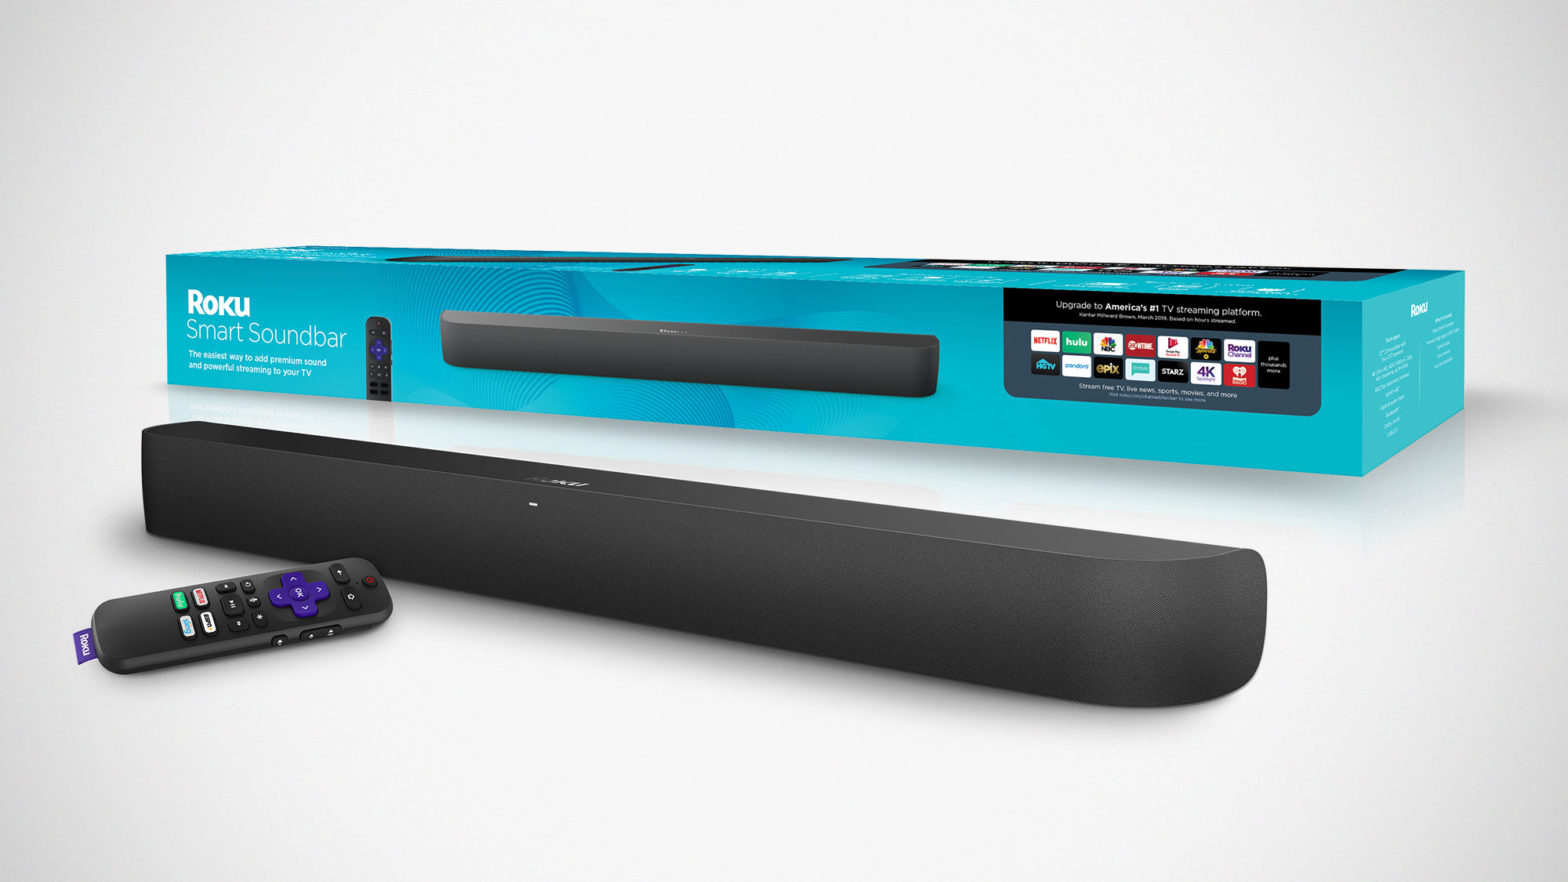 Roku Smart Soundbar and Wireless Subwoofer